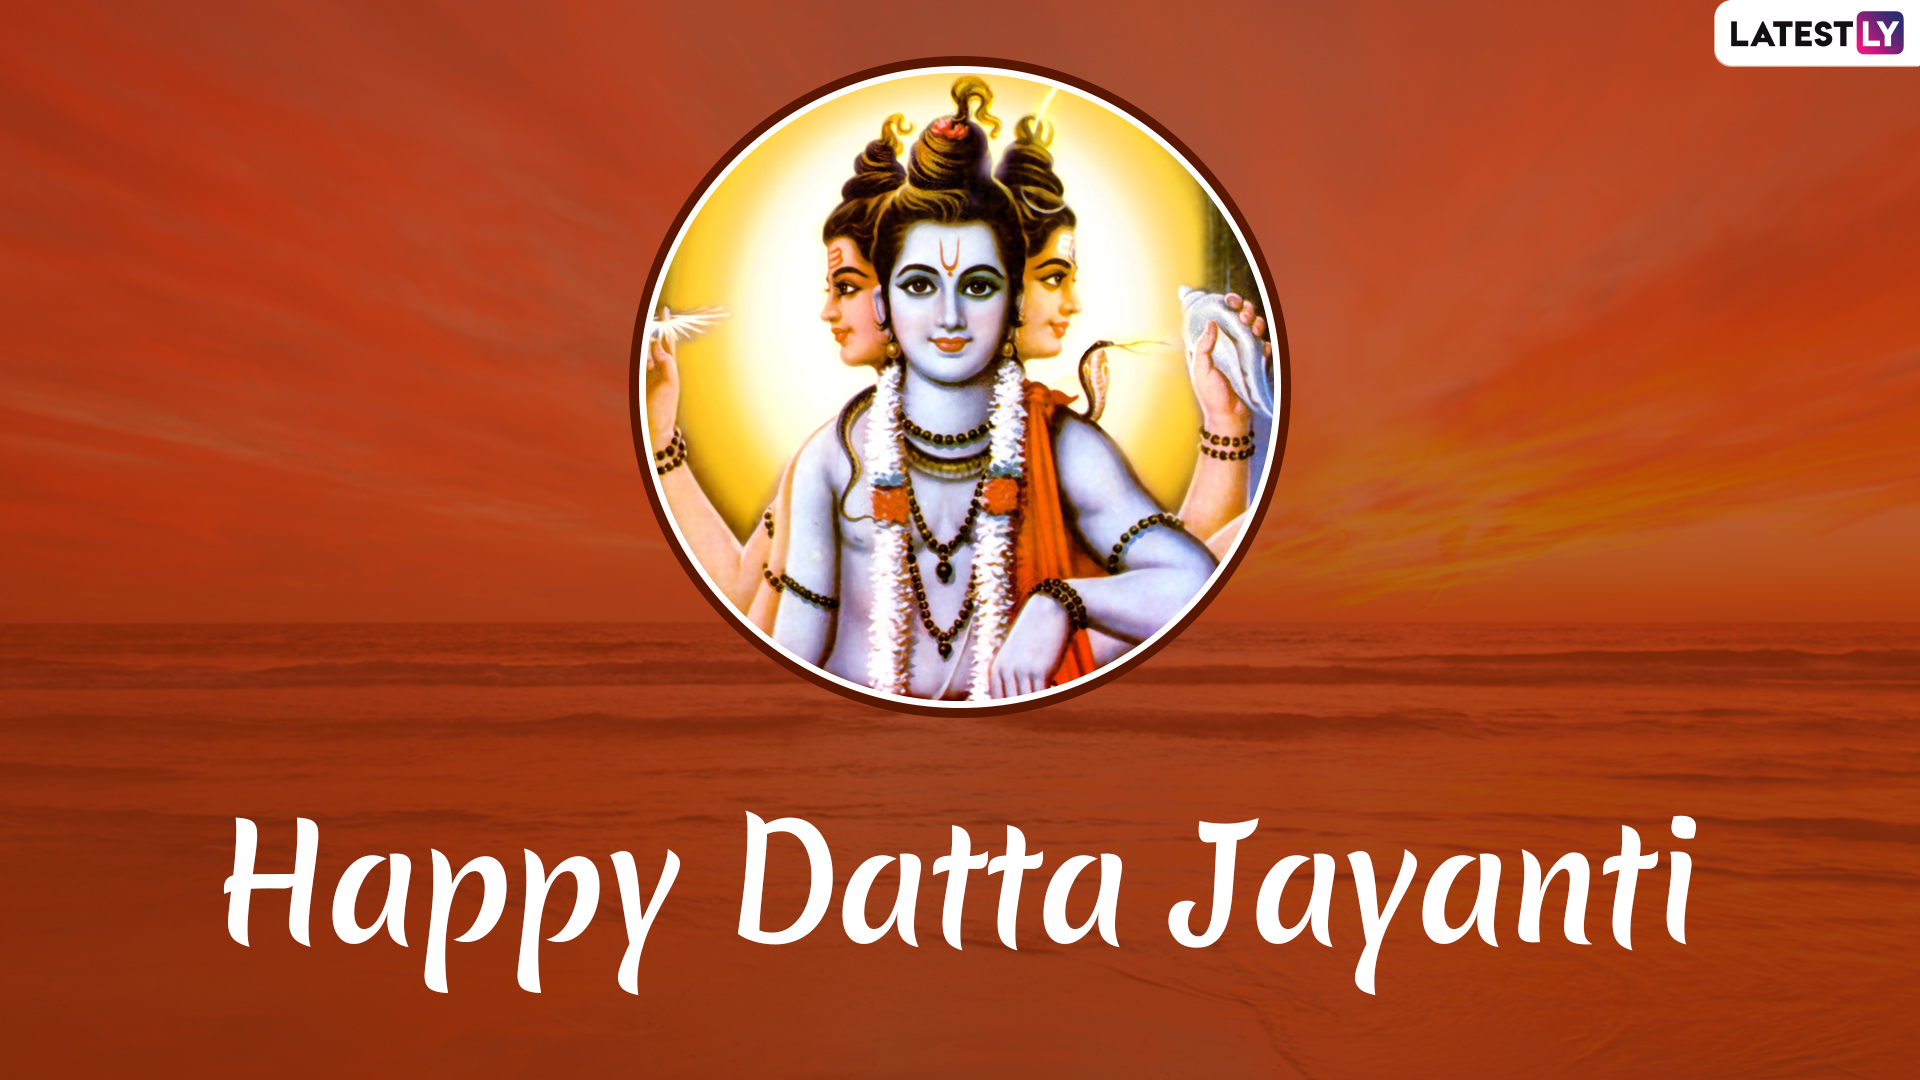 Datta Jayanti 2019 Messages: WhatsApp Images, Lord Dattatreya Photos, Greetings to Wish on This Auspicious Festival